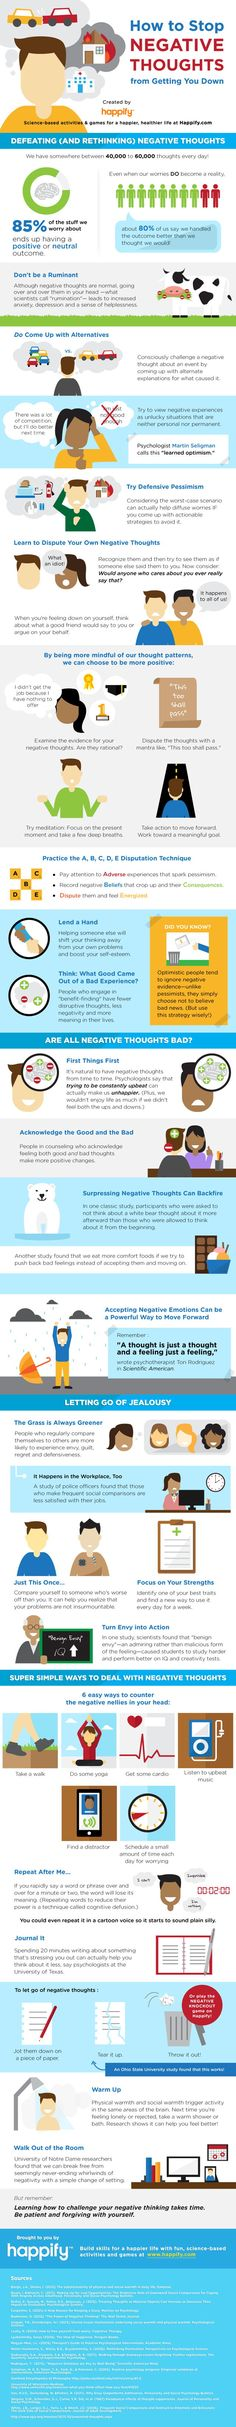 Science Explains: How to Stop Negative Thoughts from Bringing You Down (INFOGRAPHIC)